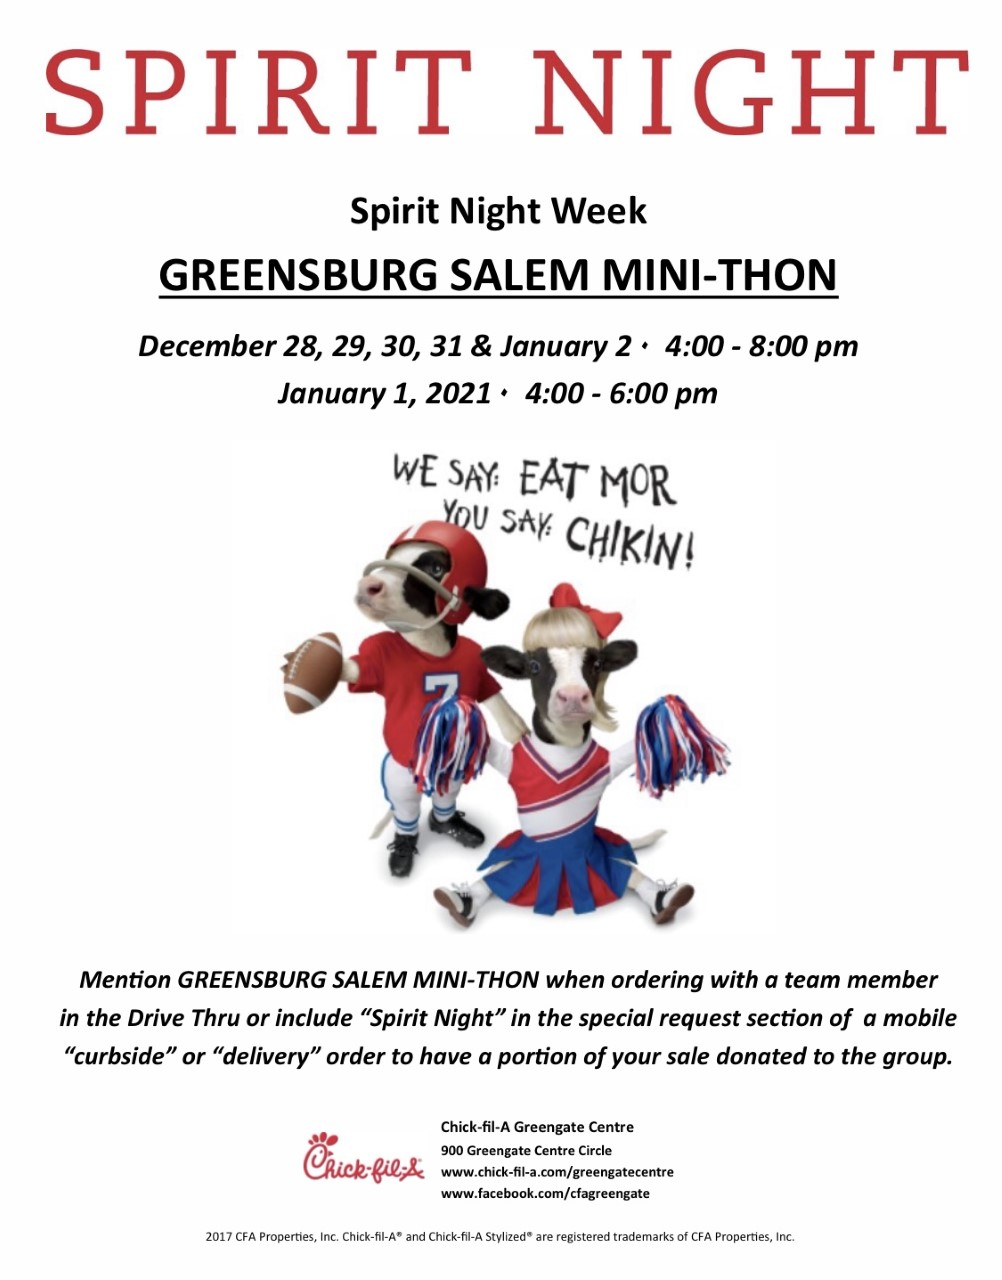 chick fil a spirit night